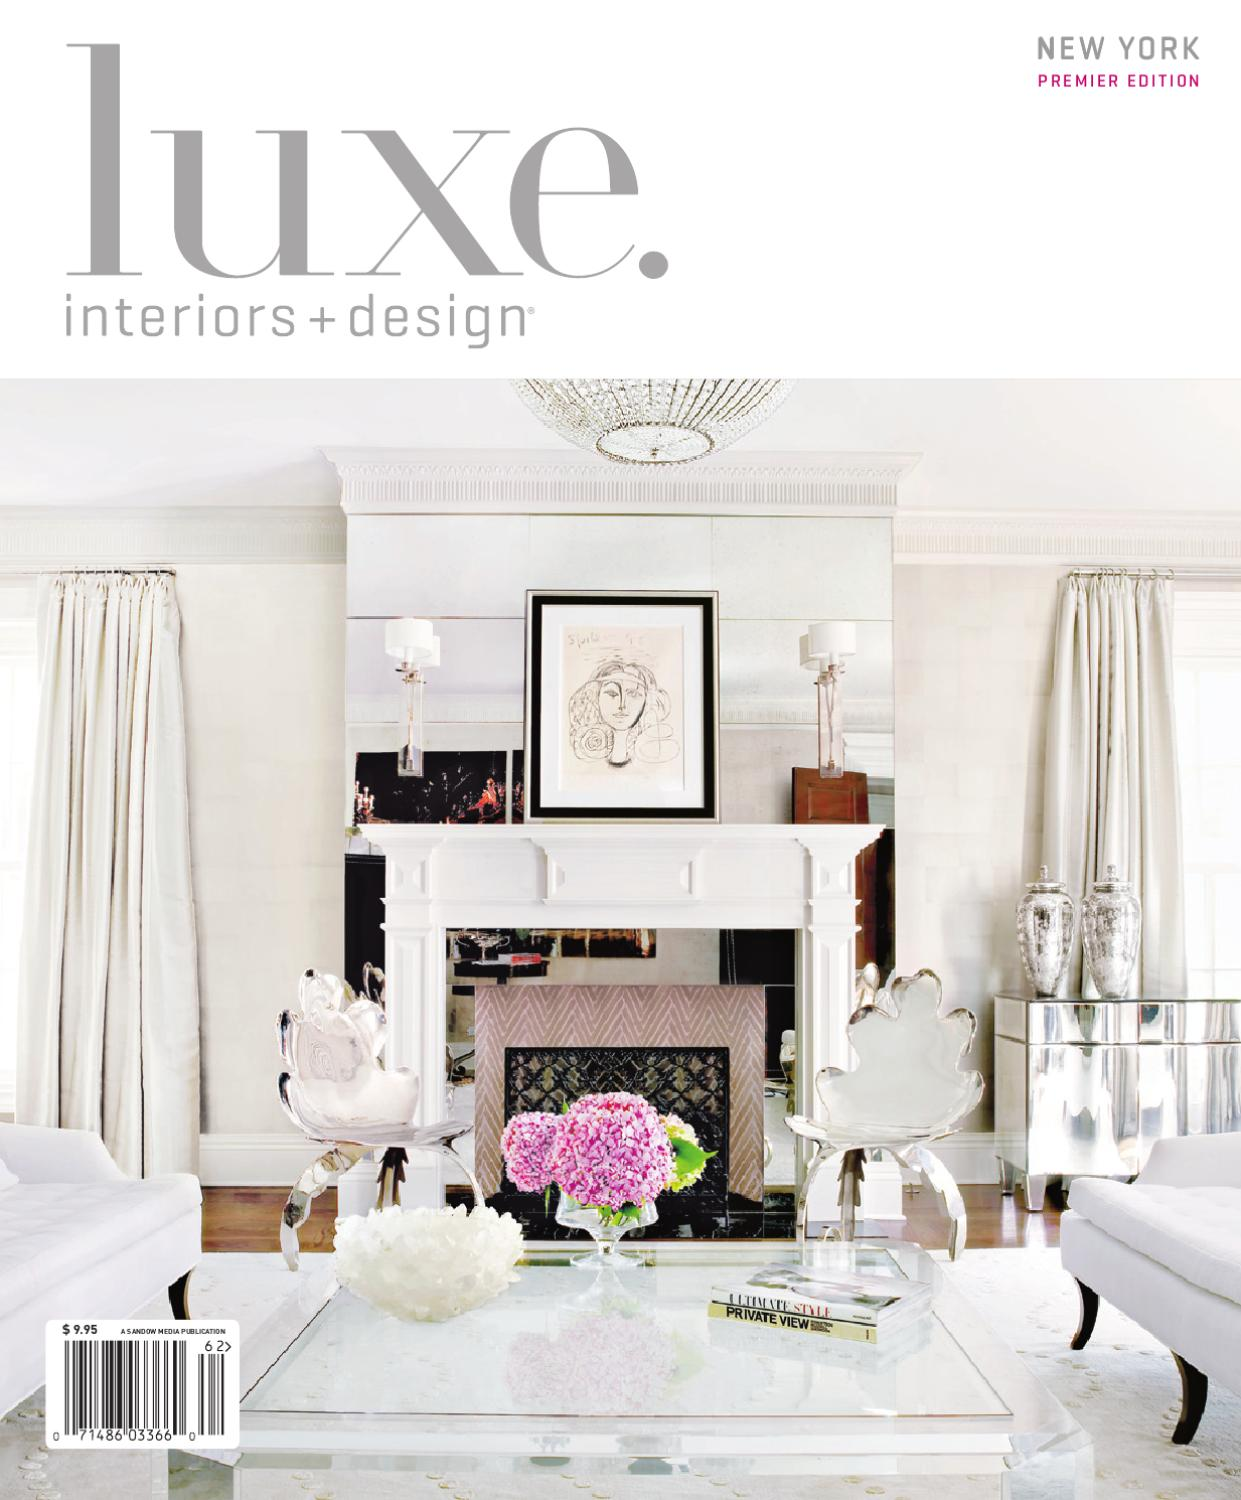 LUXE Interior + Design New York By Sandow Media   Issuu